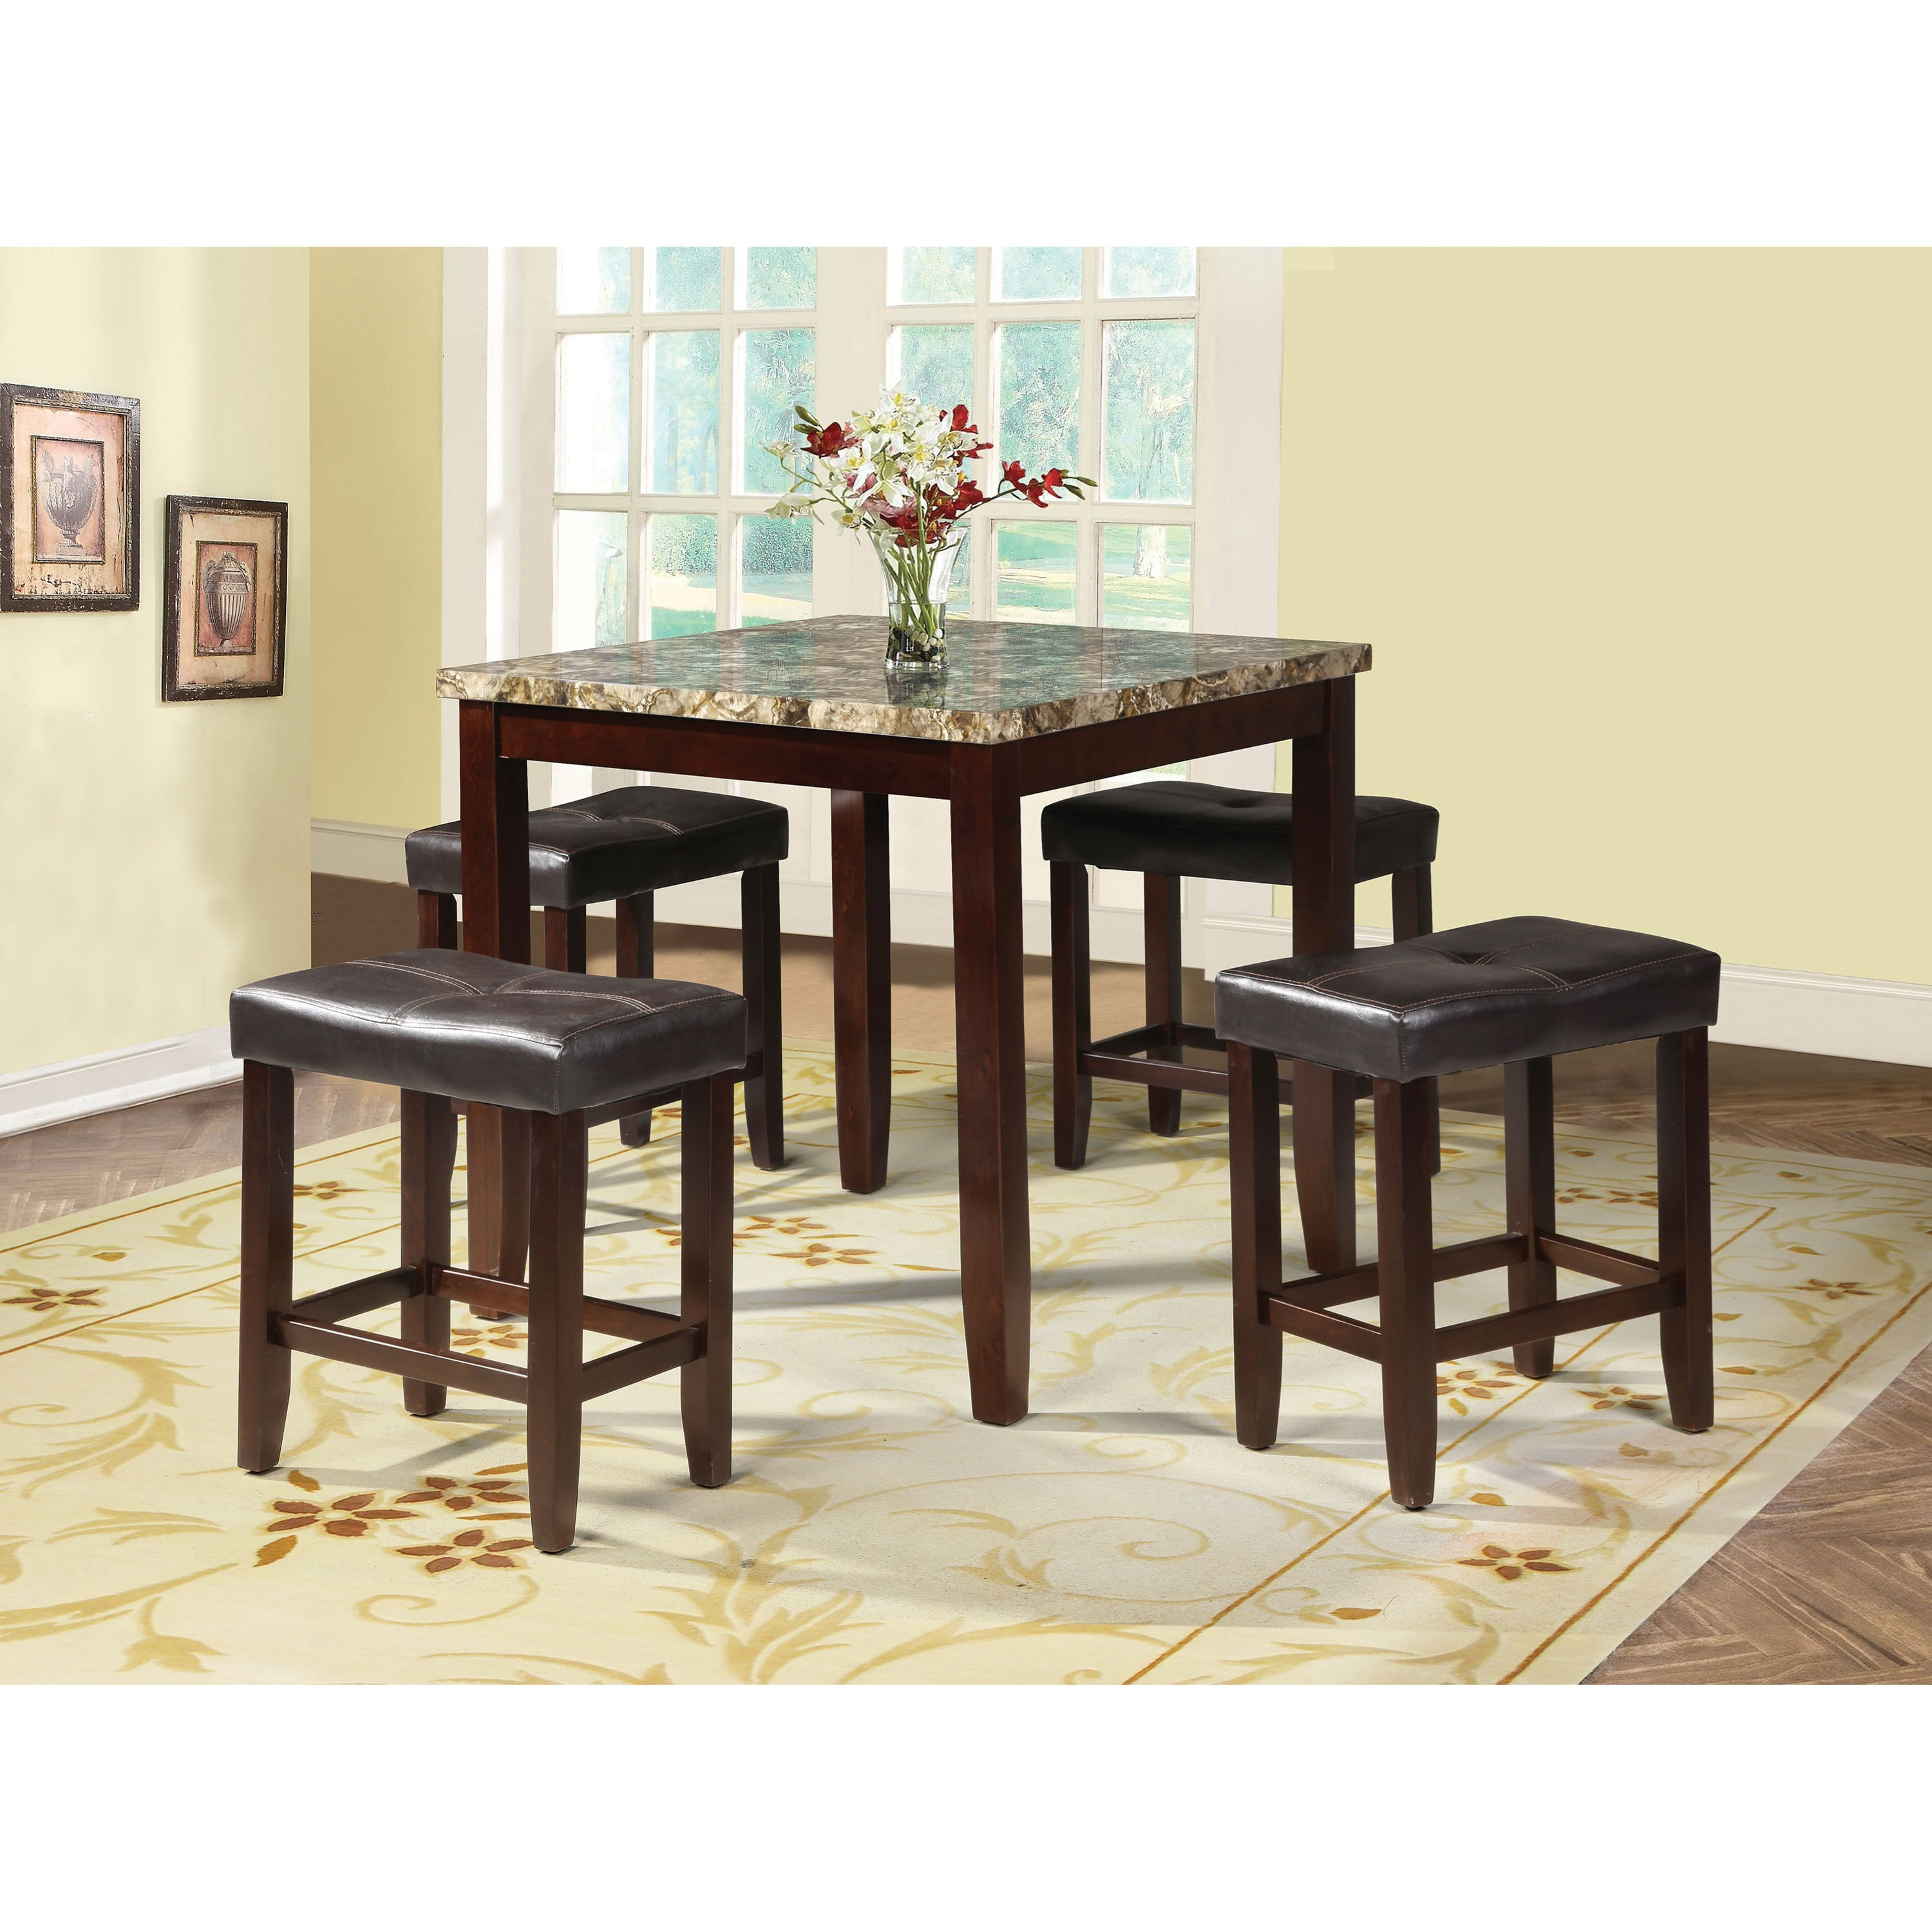 Rolle Counter Height Dining Set with 4 Chairs by Acme Furniture at Carolina Direct